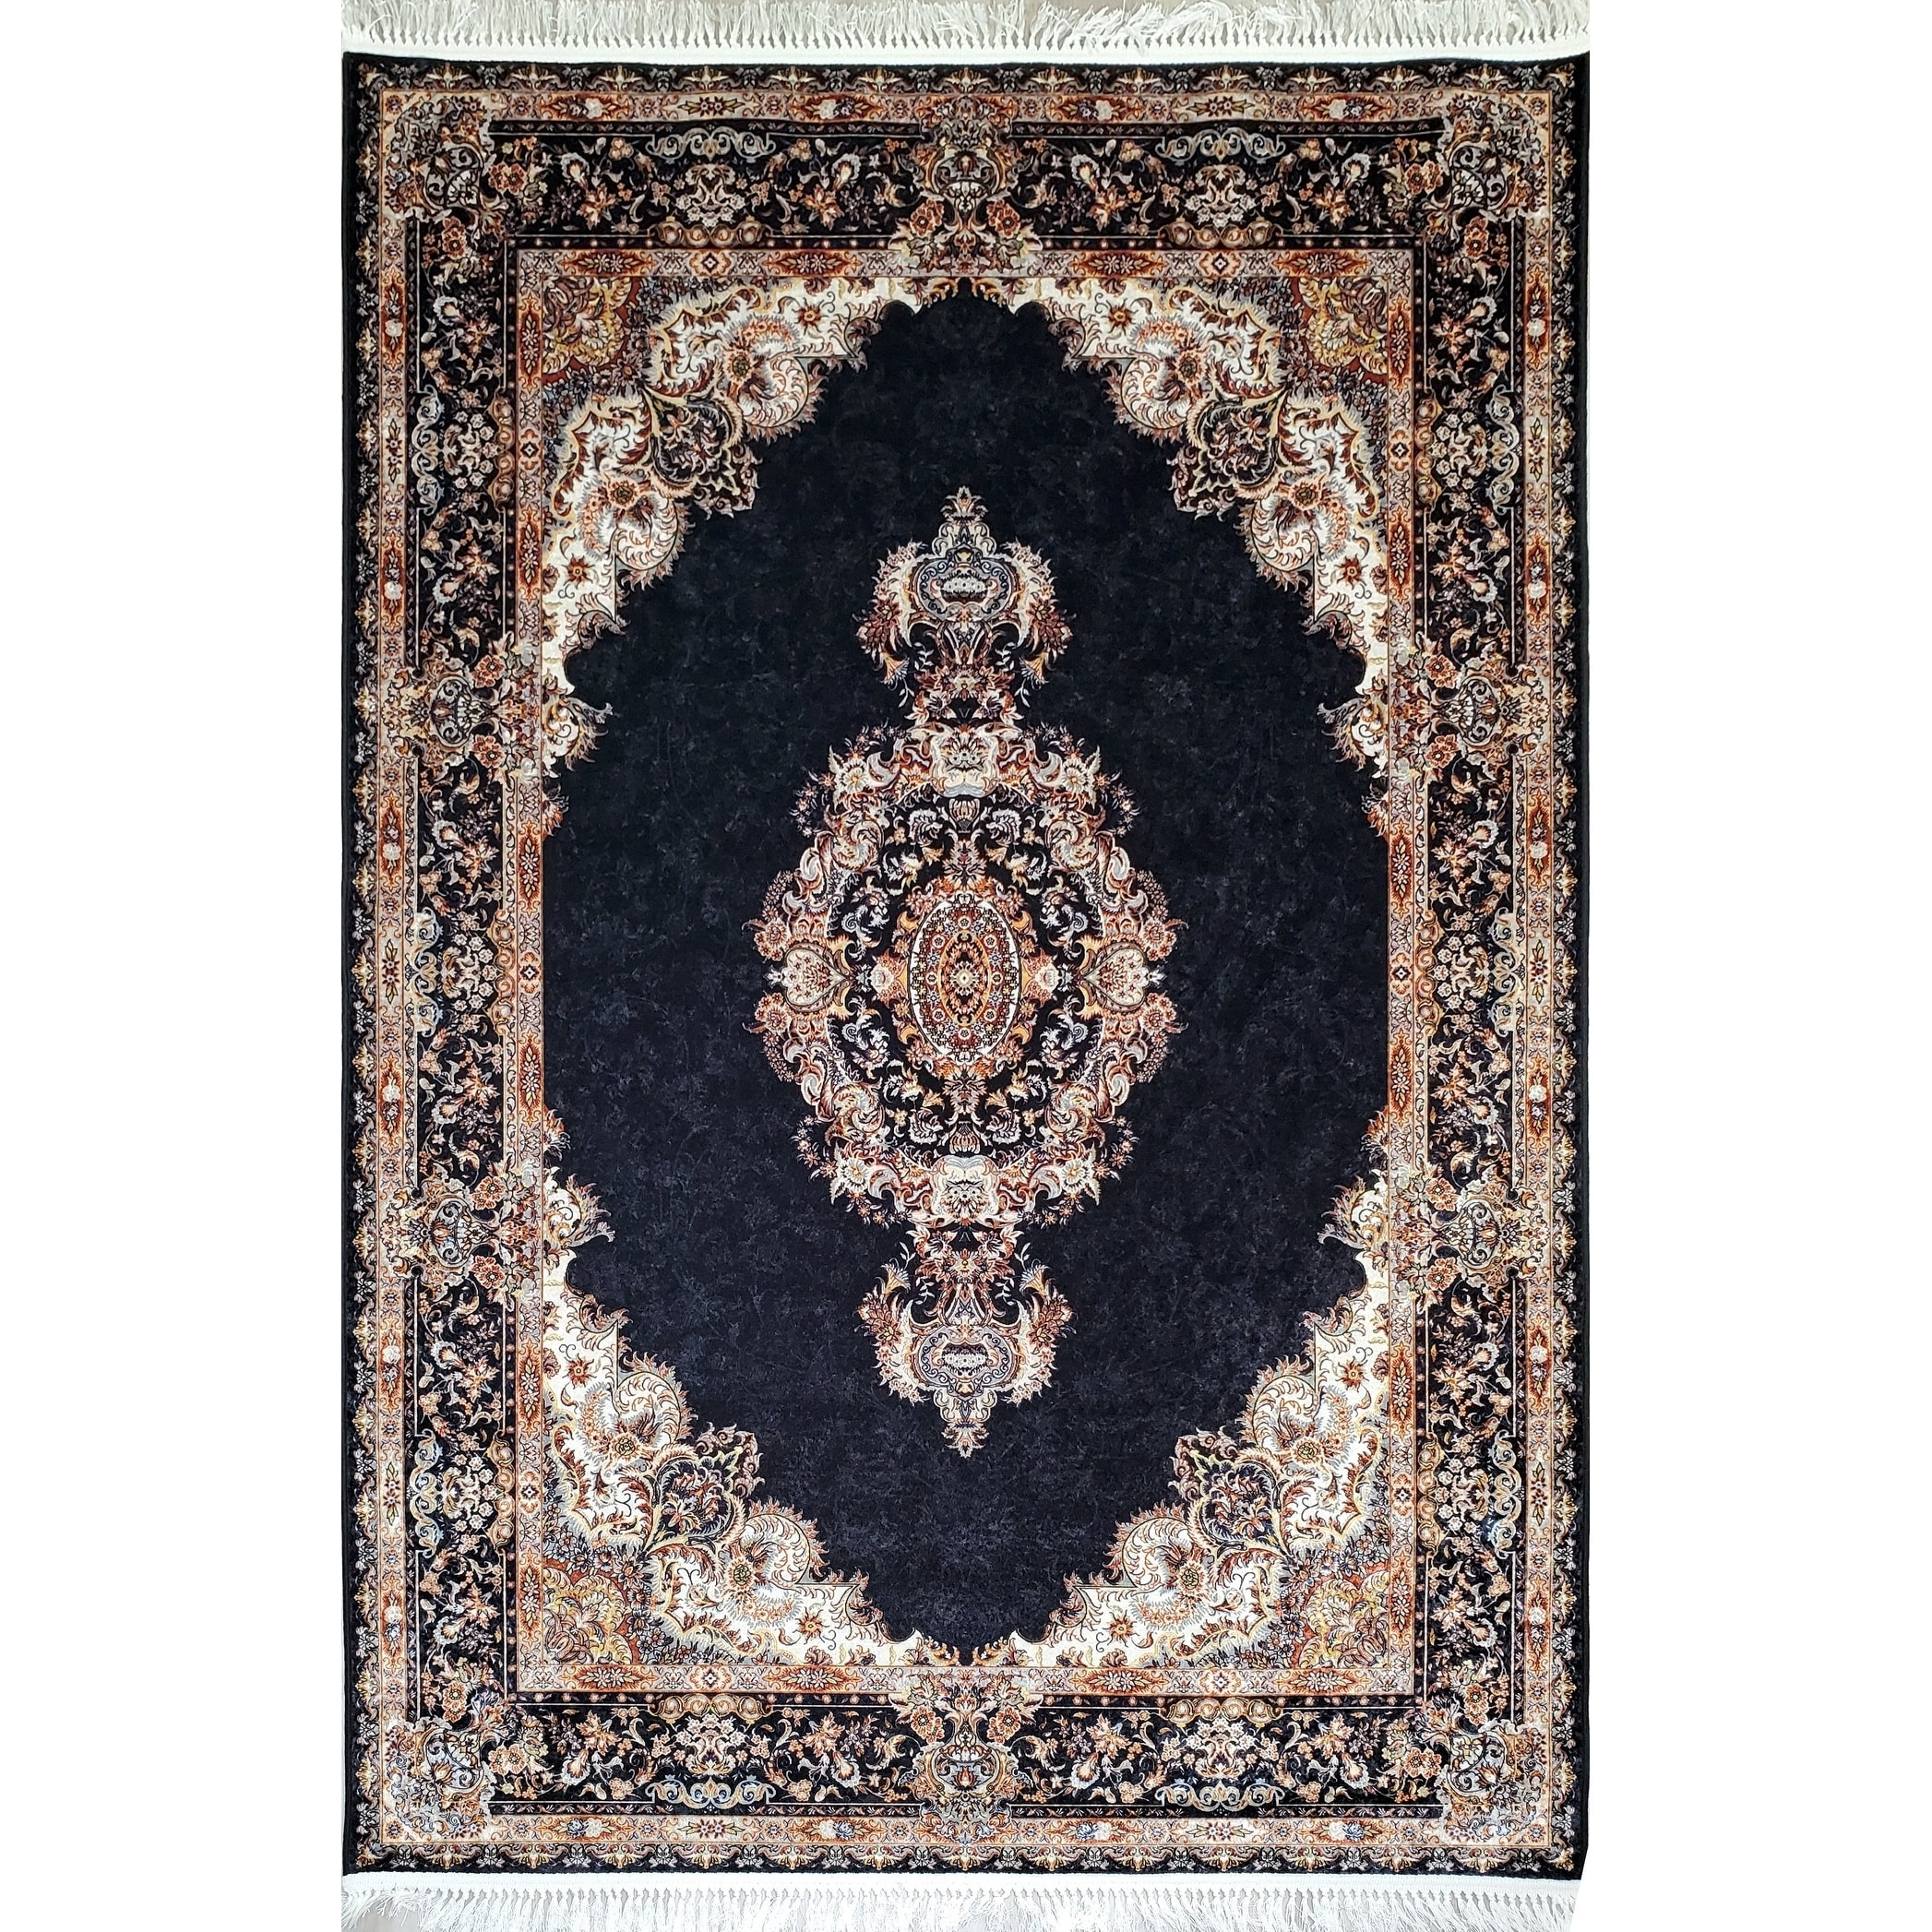 la dole rugs dark navy blue gold bordered royal traditional area rug carpet living room hallway patio sizes 5x7 8x10 7x9 feet